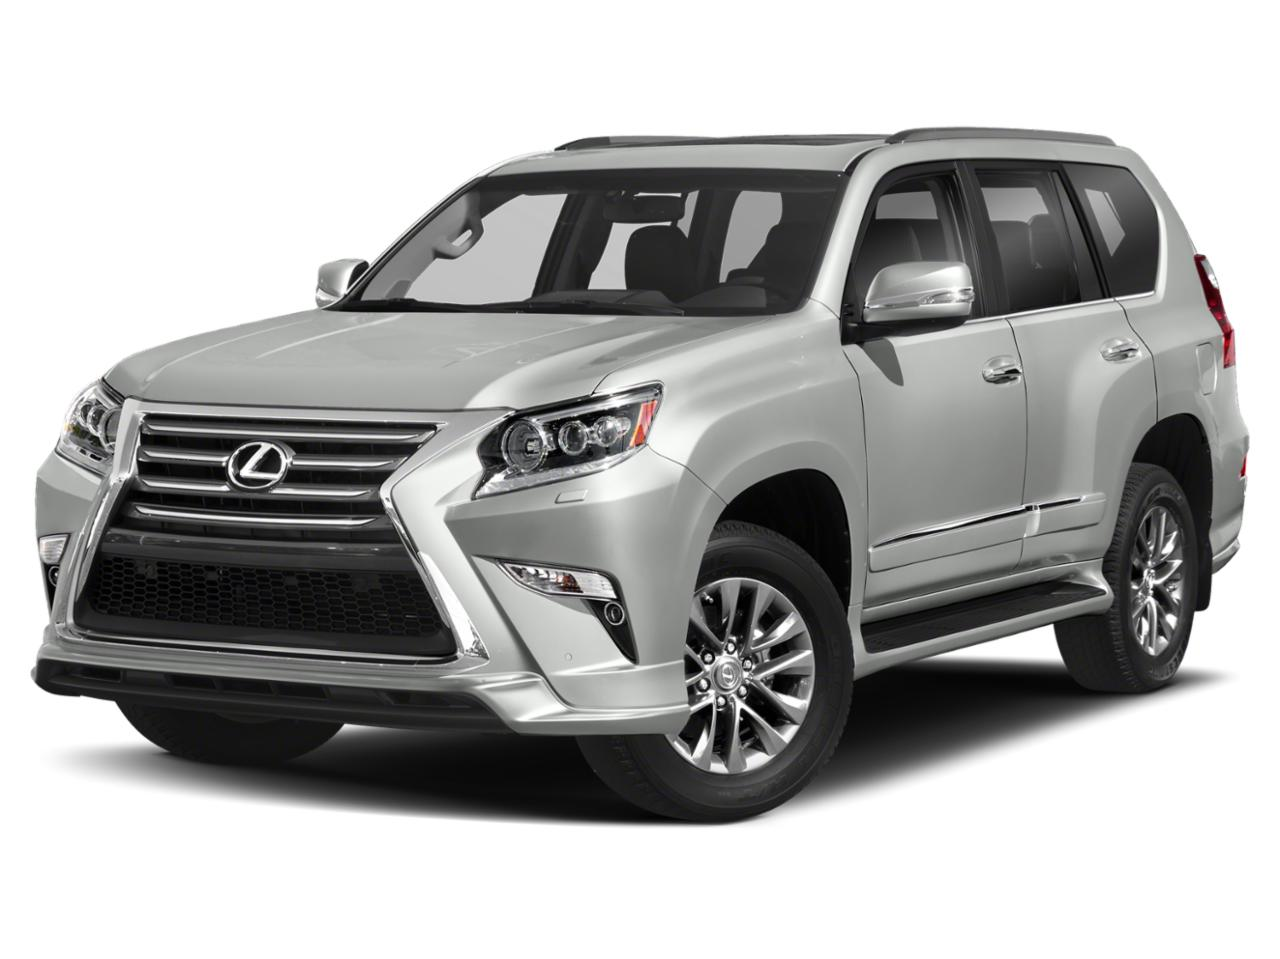 2018 Lexus GX 460 Vehicle Photo in Medina, OH 44256